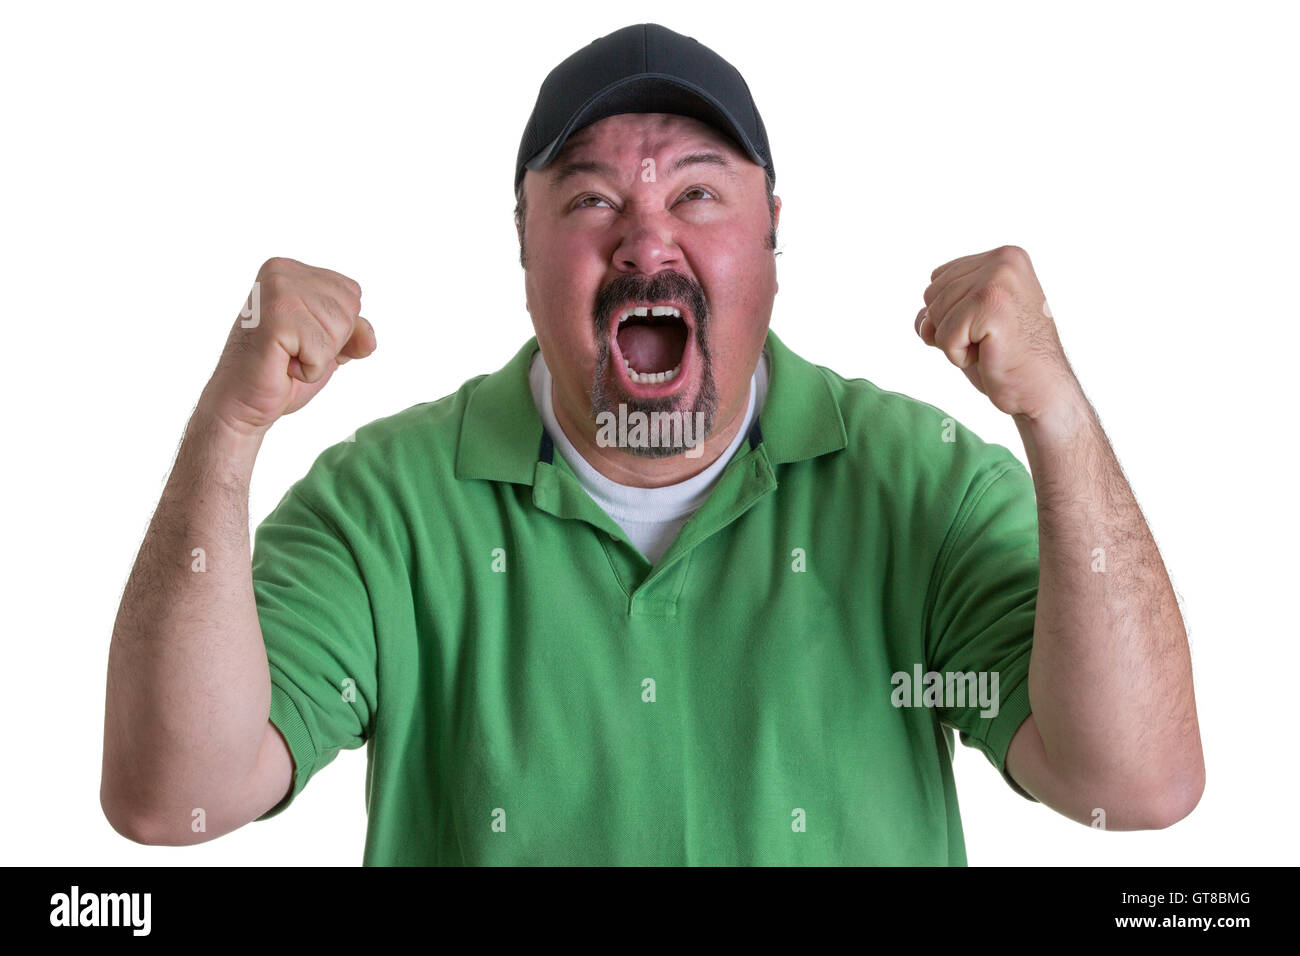 Excited Overweight Man Wearing Green Shirt and Black Baseball Cap Celebrating, Pumping Fists and Cheering in Studio - Stock Image